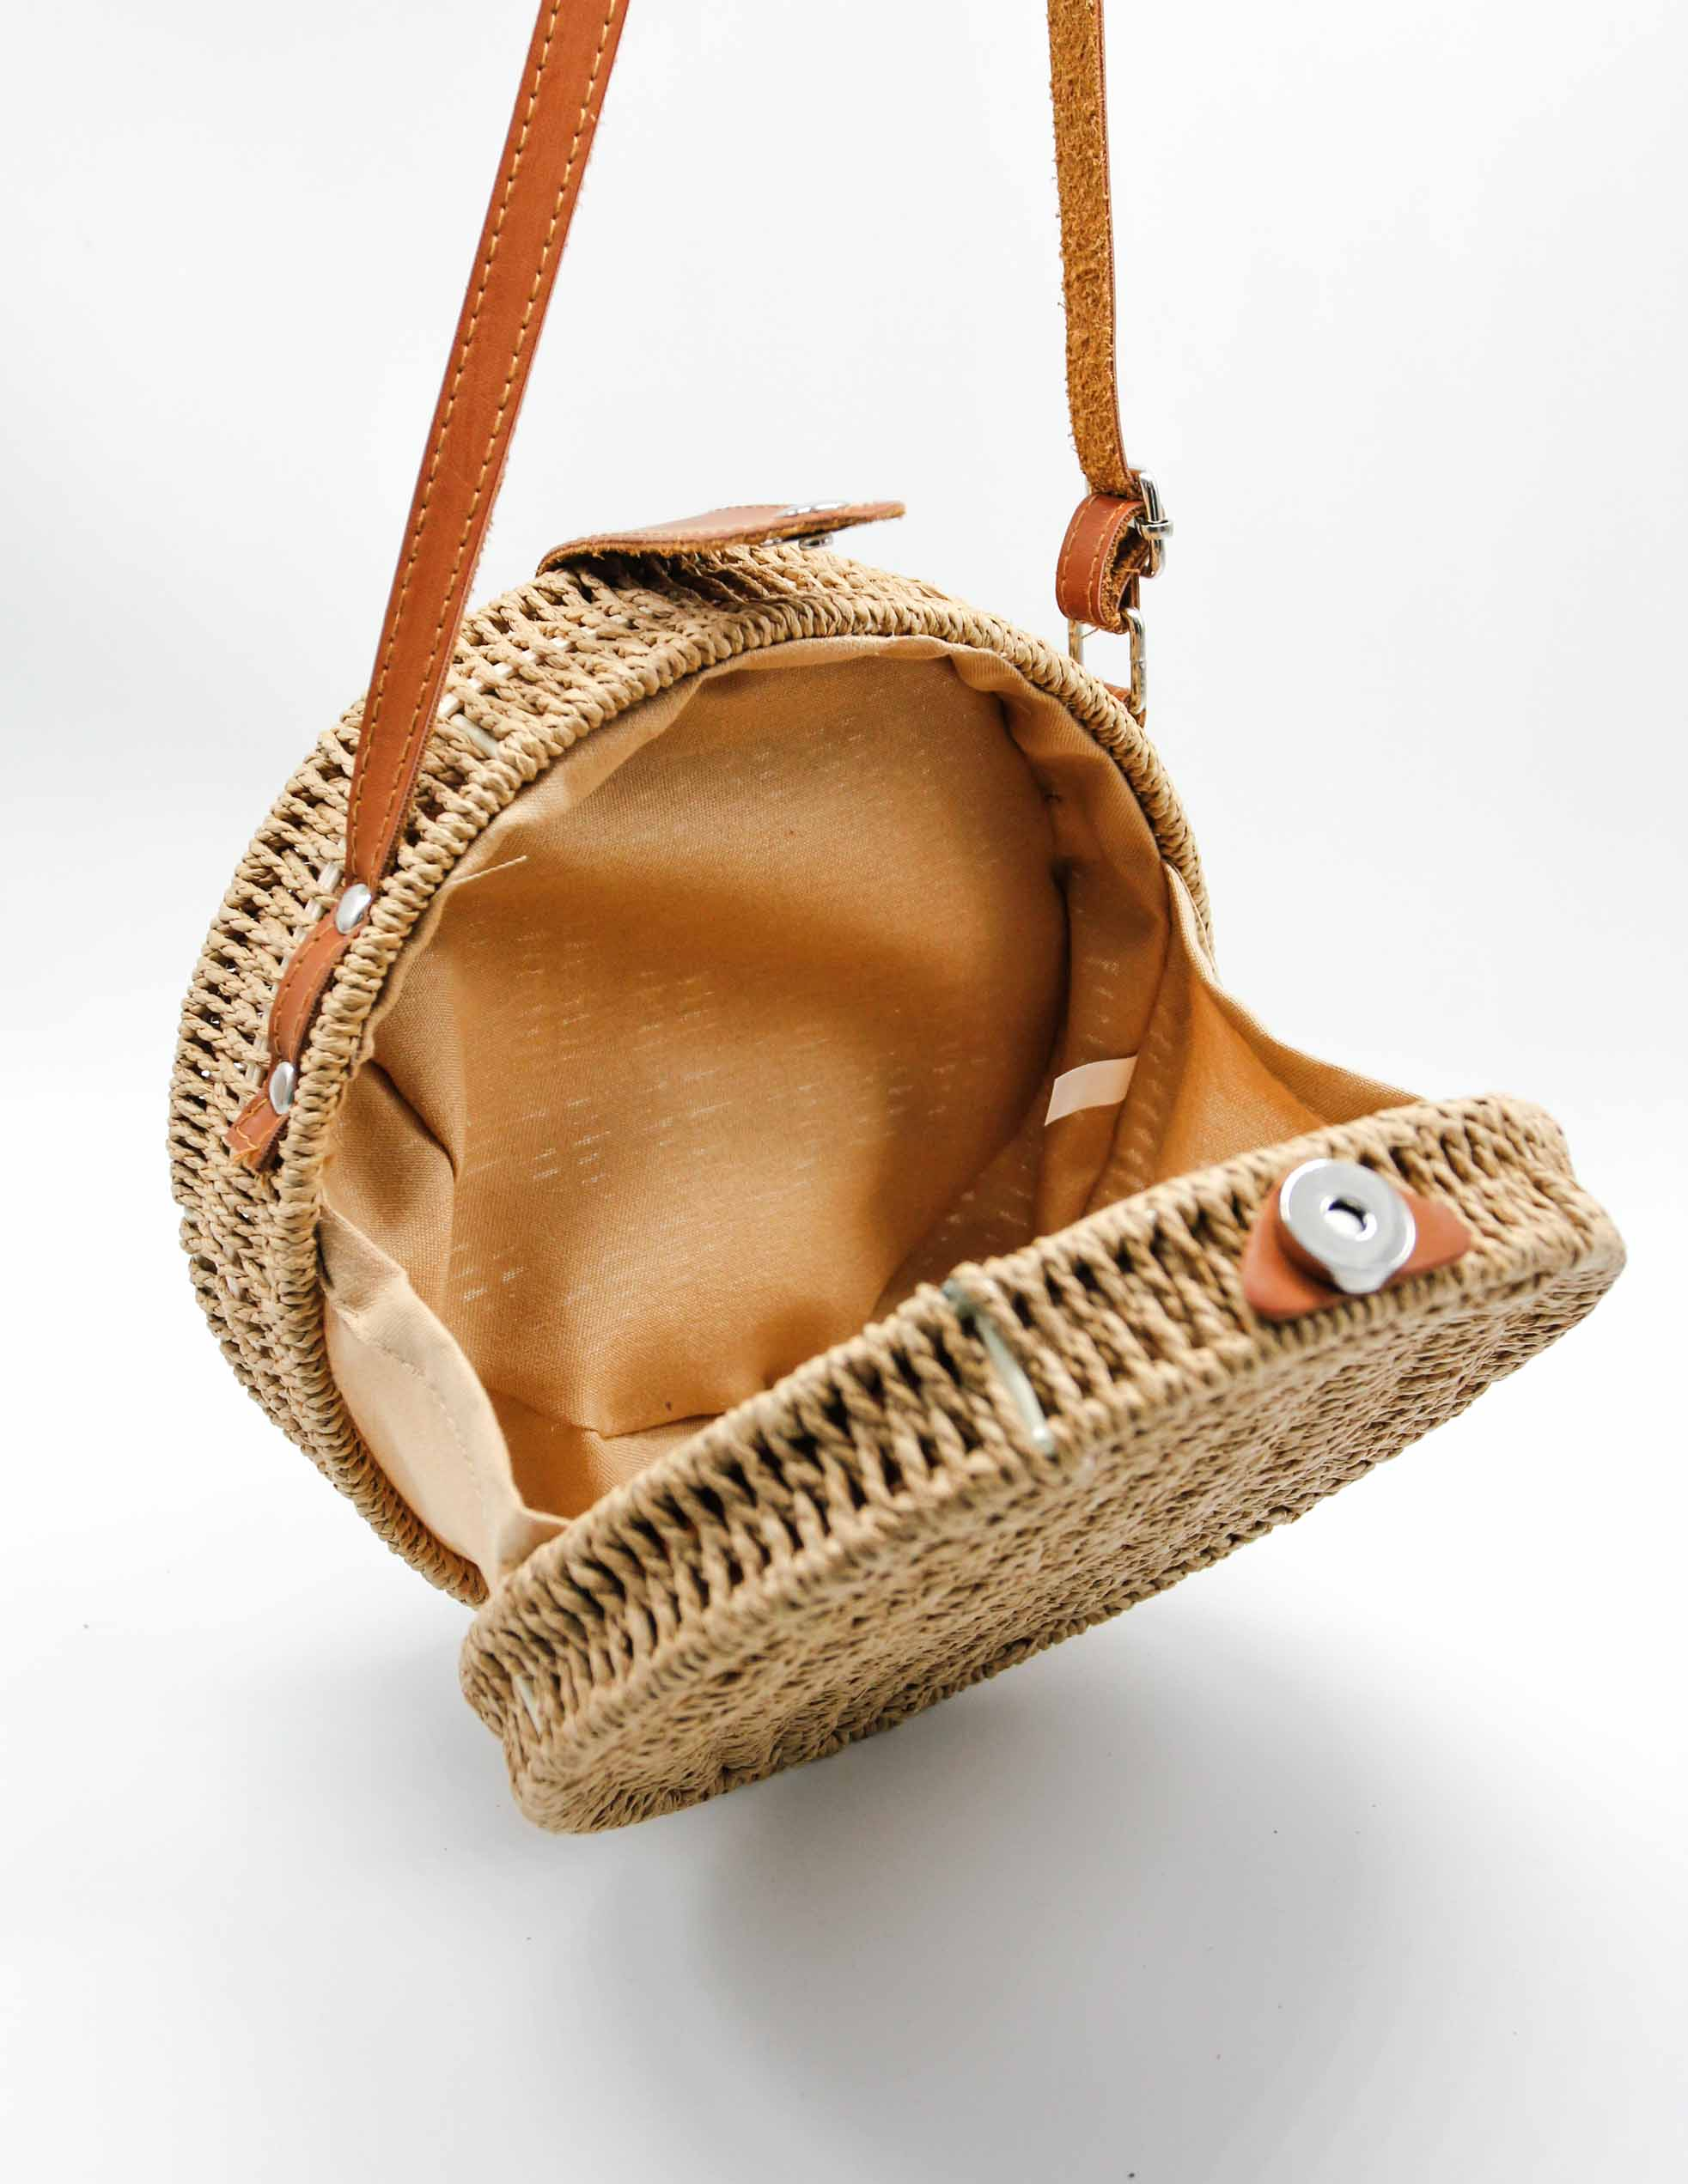 Fairplay Woven Bag - Tan